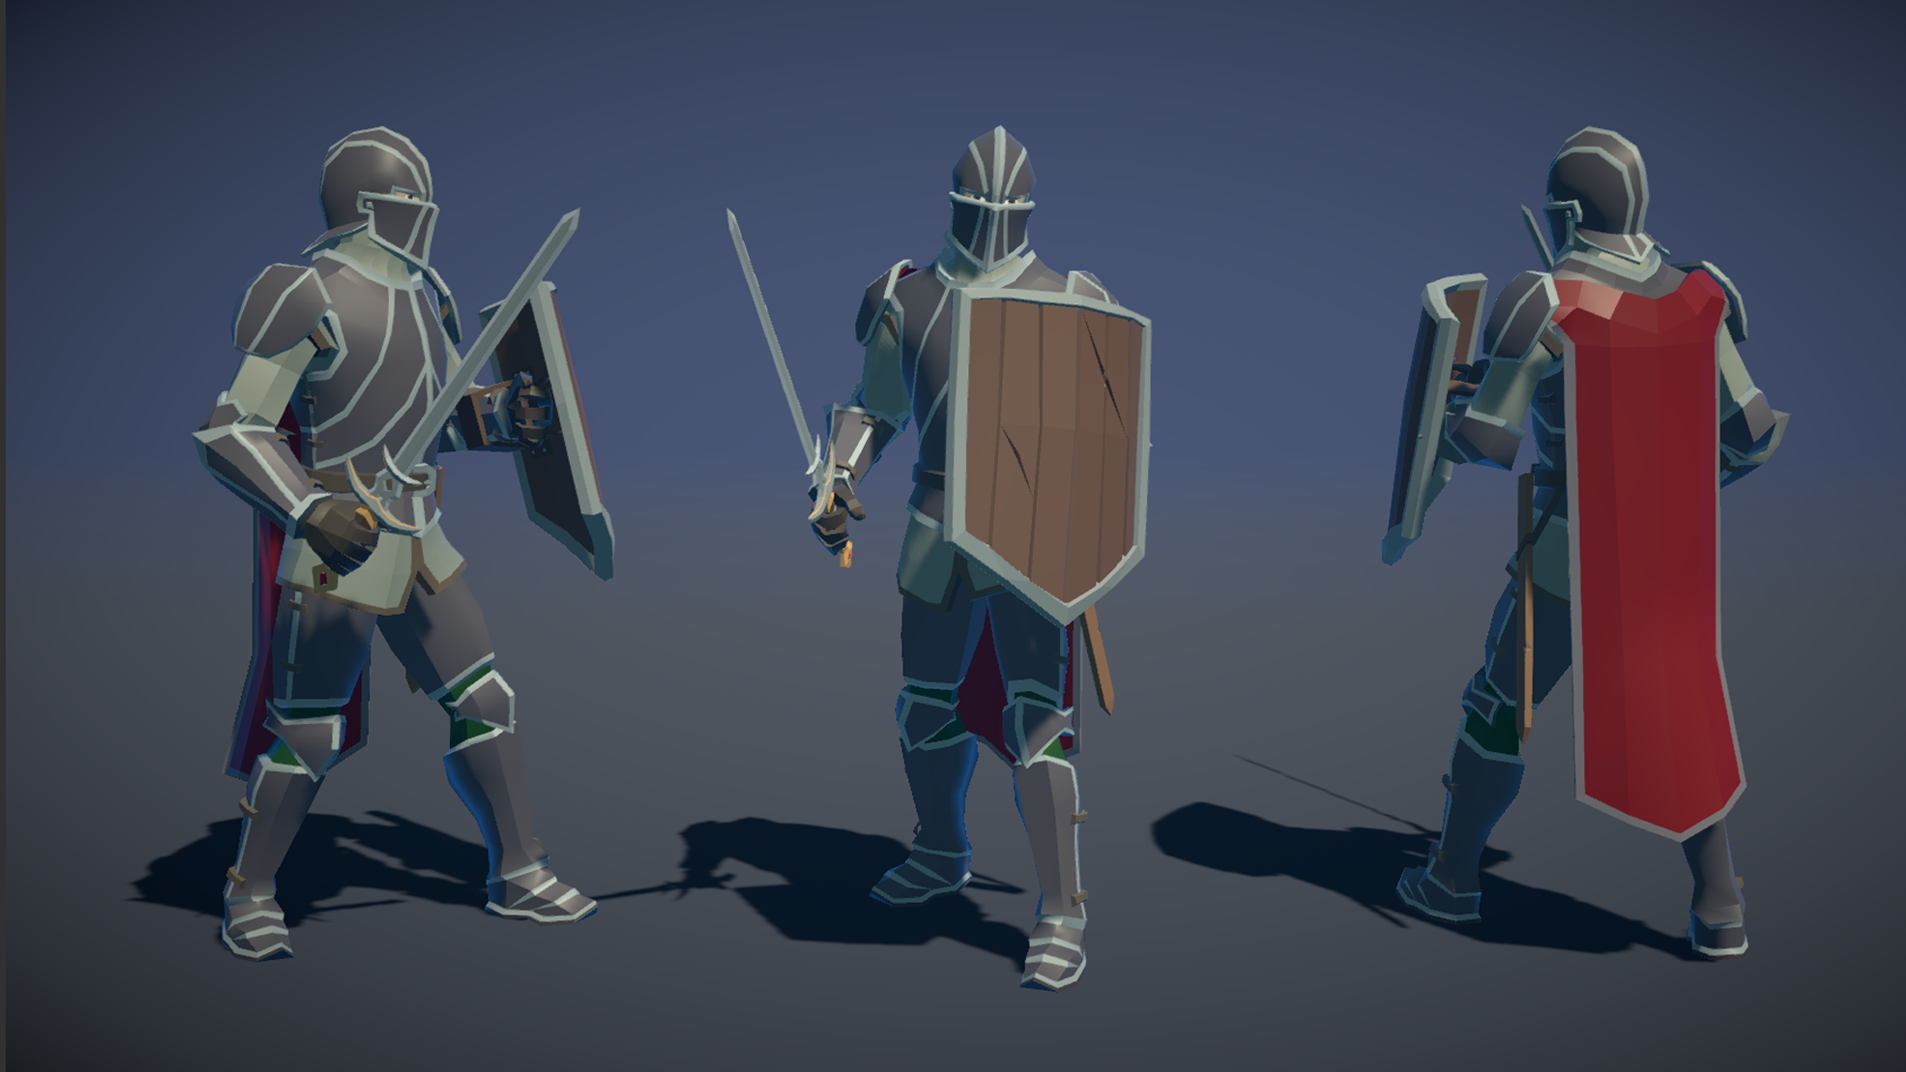 PT_Medieval_Lowpoly_Characters_Knight_01.png